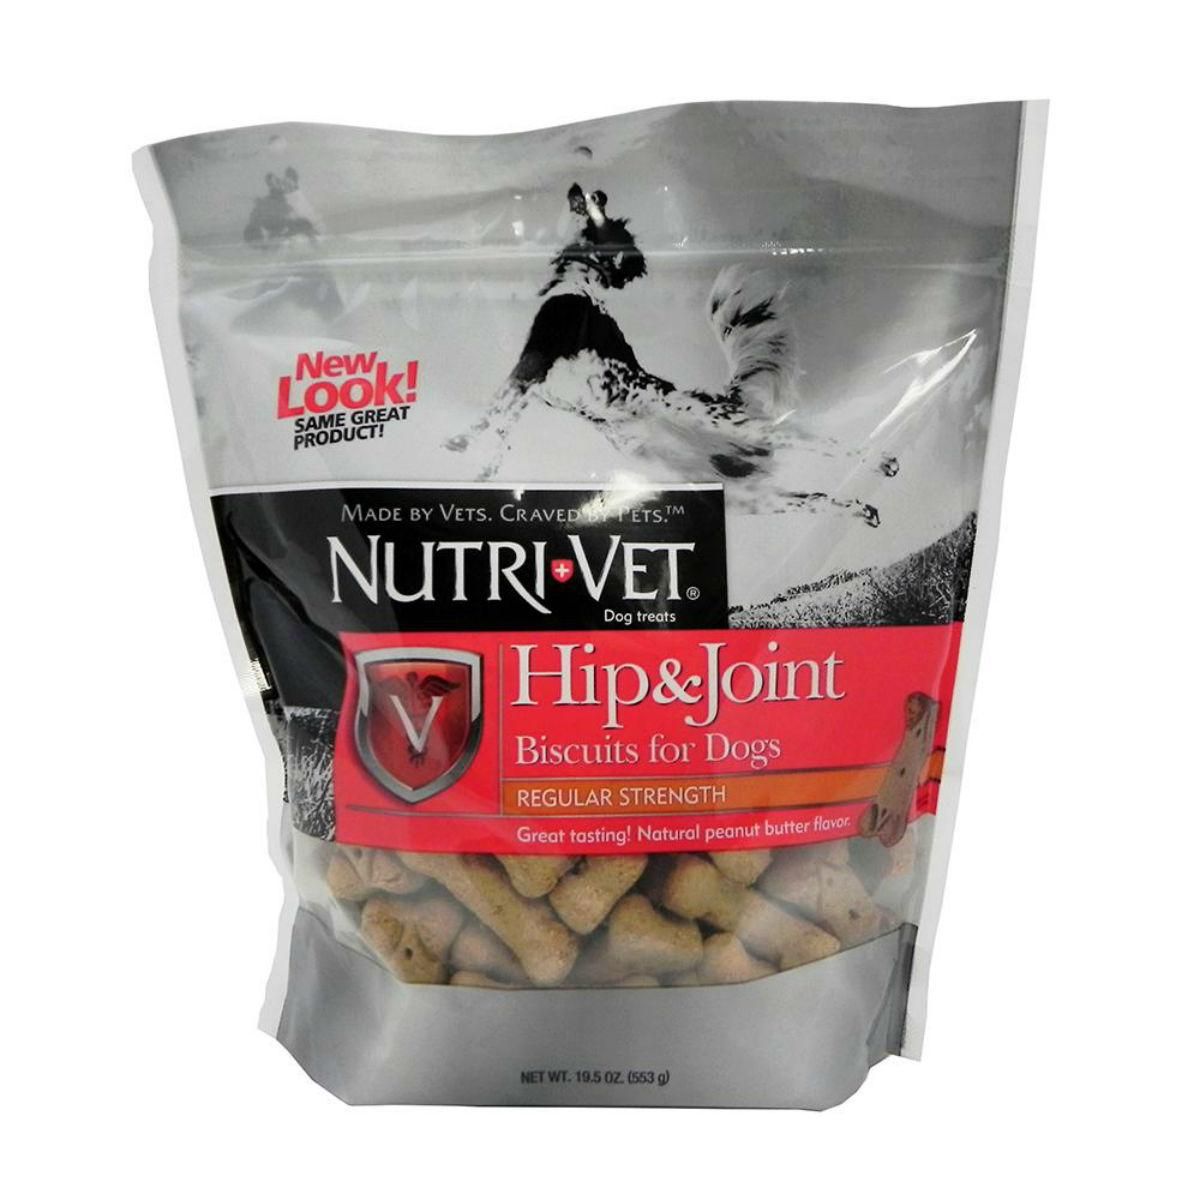 Nutri-Vet Hip & Joint Peanut Butter Wafers